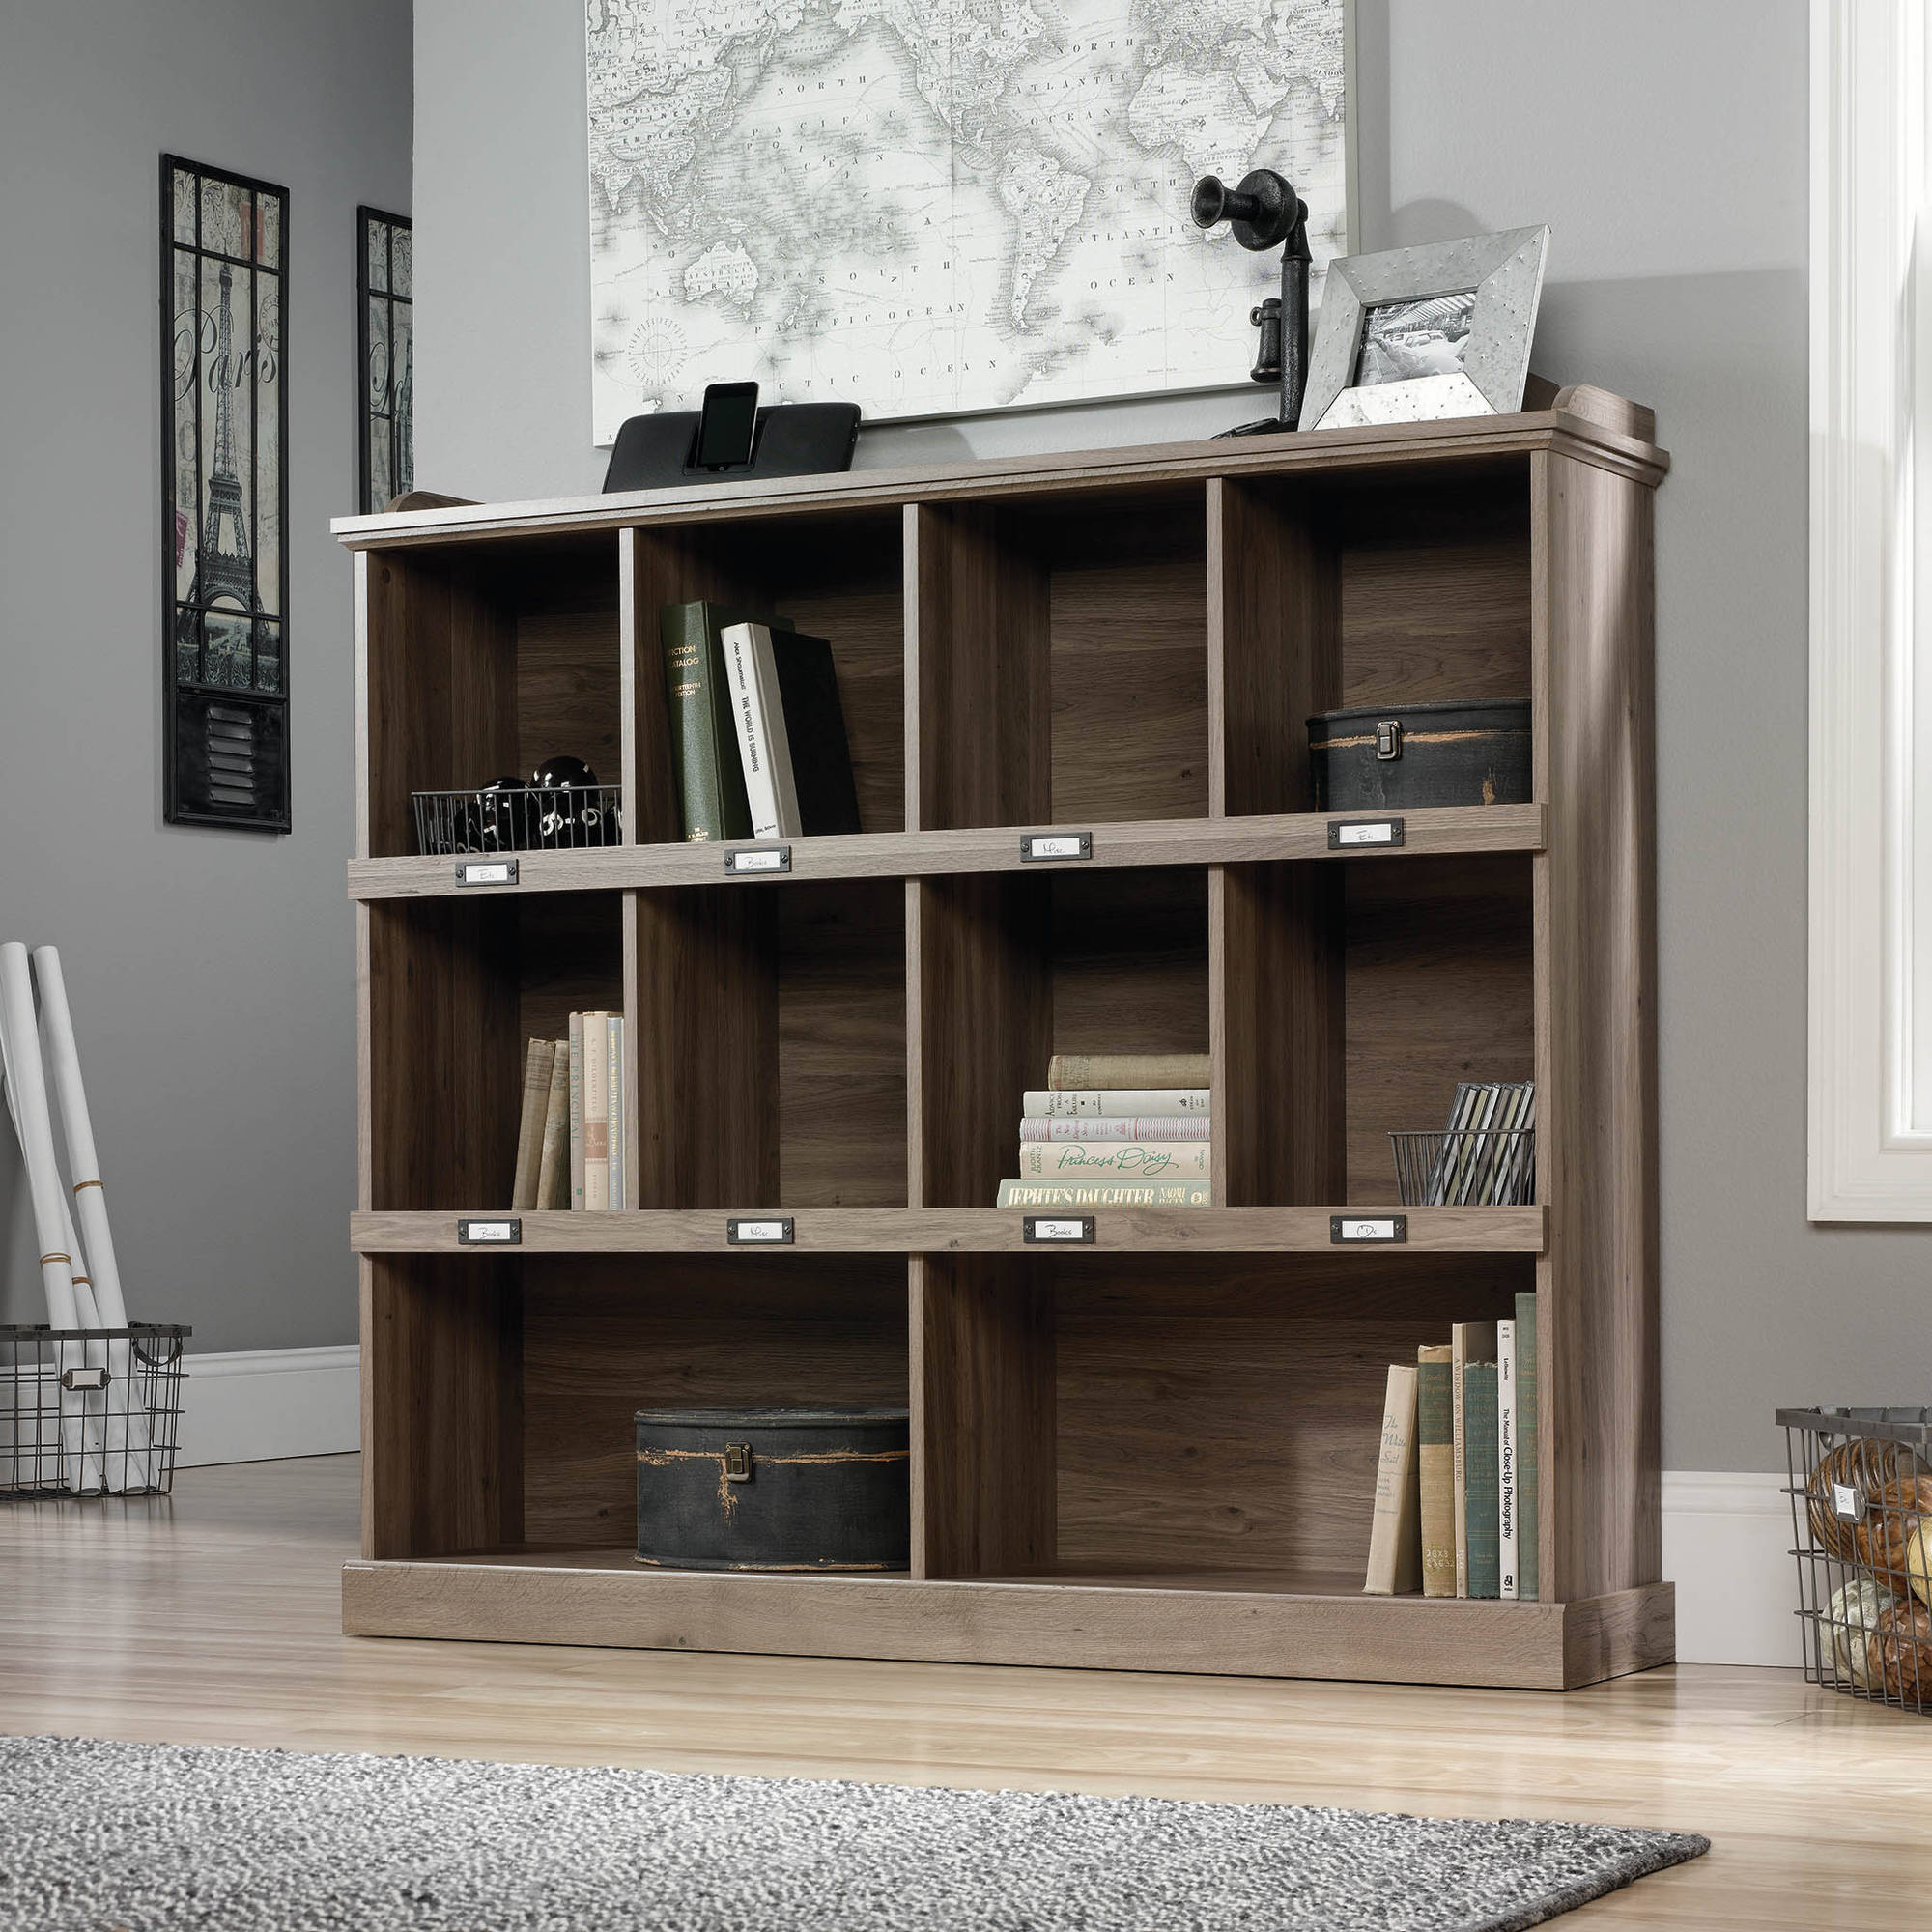 Amazing Sauder Barrister Lane Bookcase, Multiple Colors sauder barrister bookcase